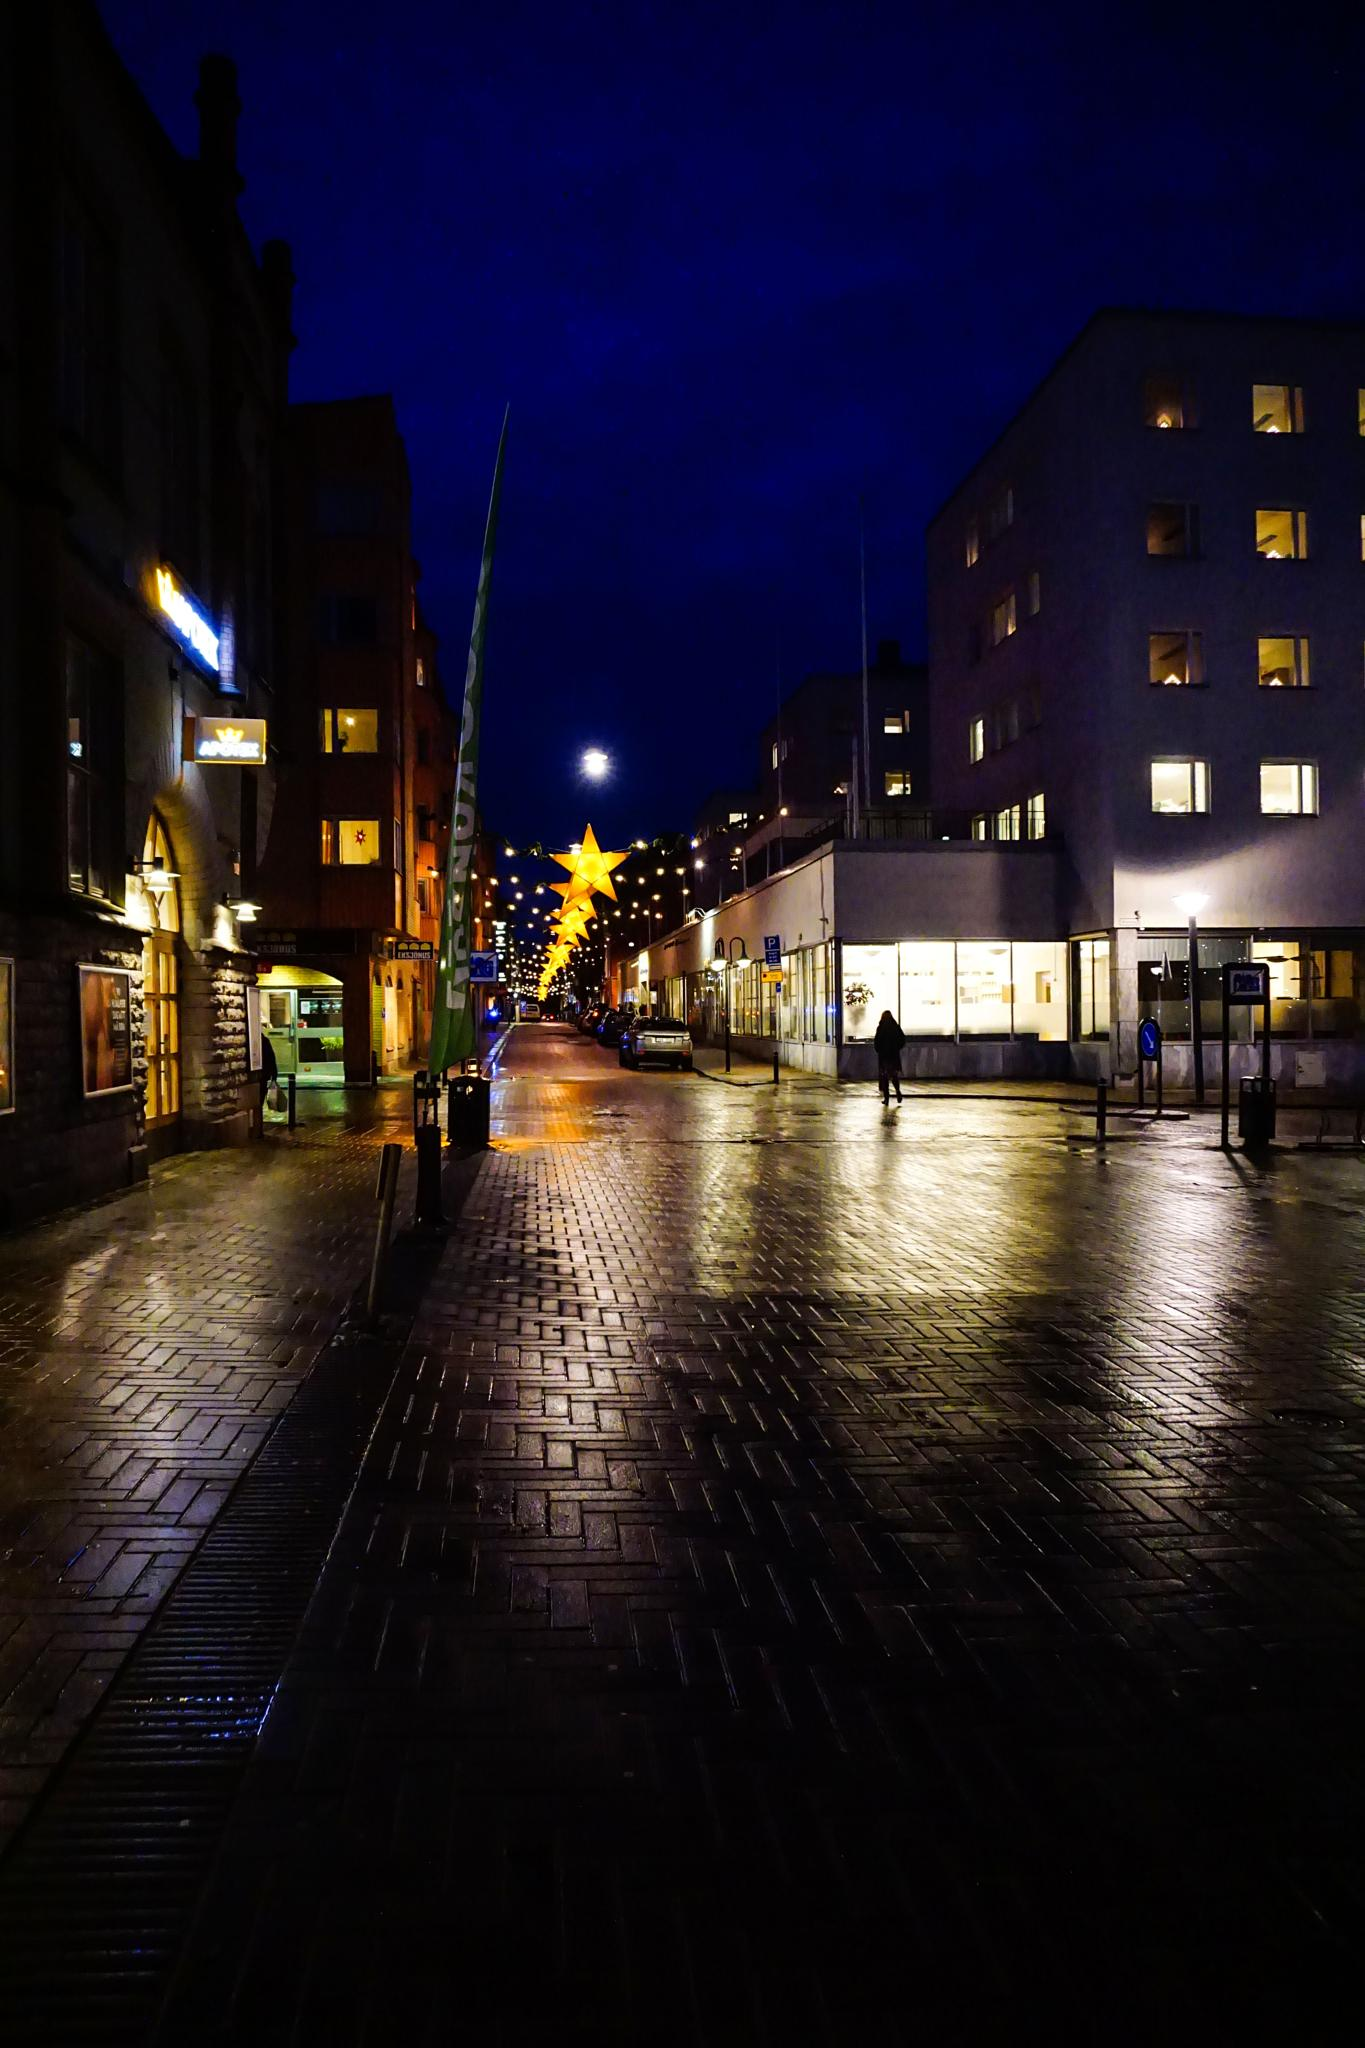 Early morning on the streets of Norrköping by t2photo